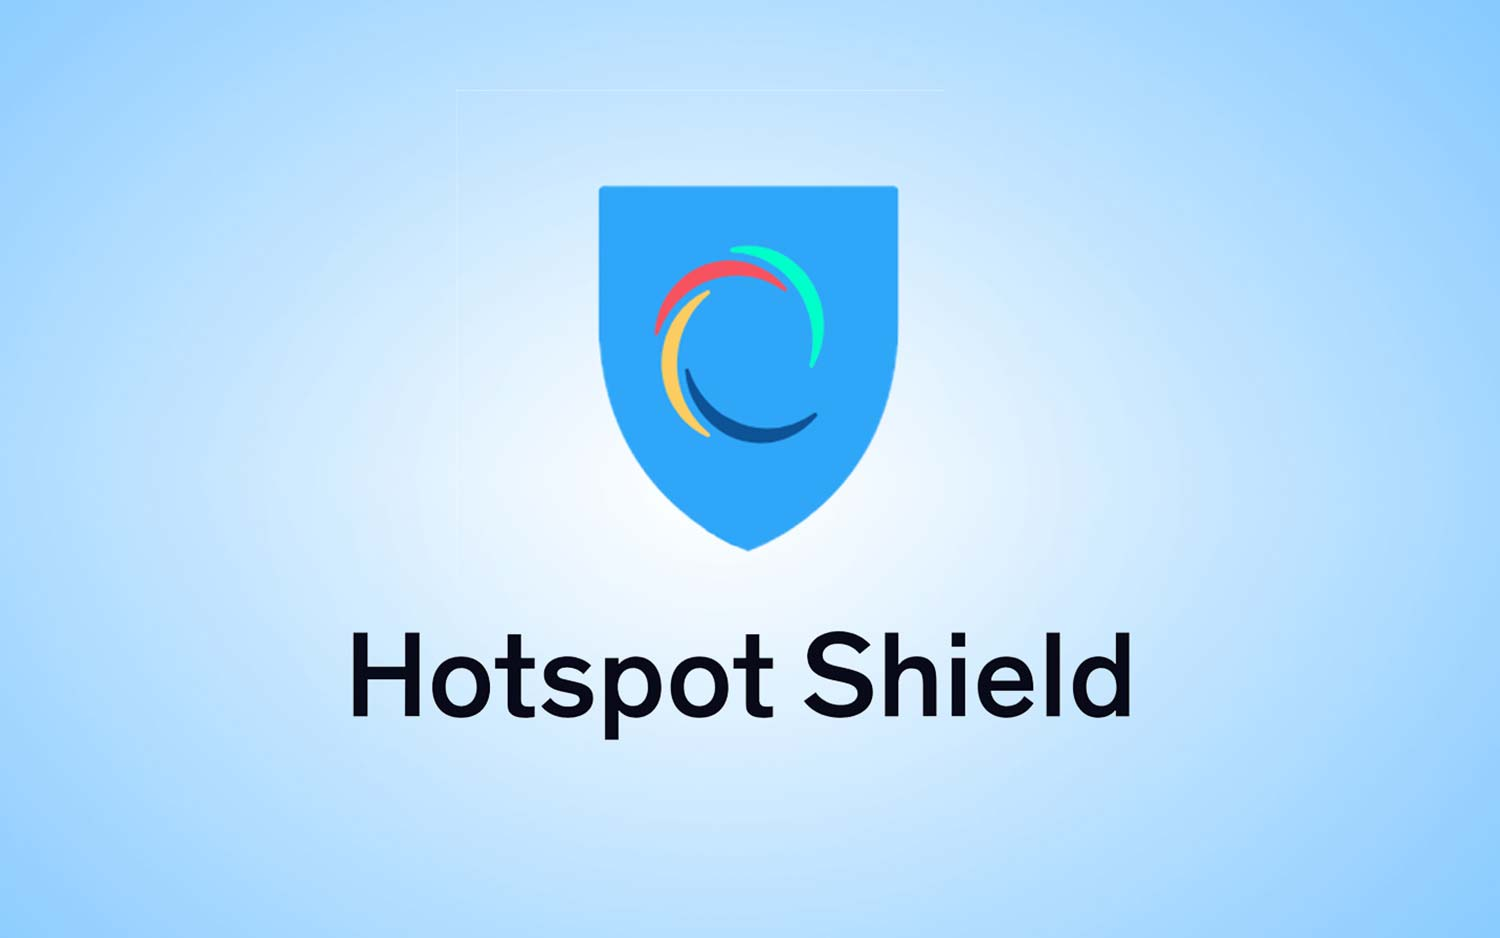 Hotspot Shield 9.8.7 Crack + License Key (Torrent) Free Download